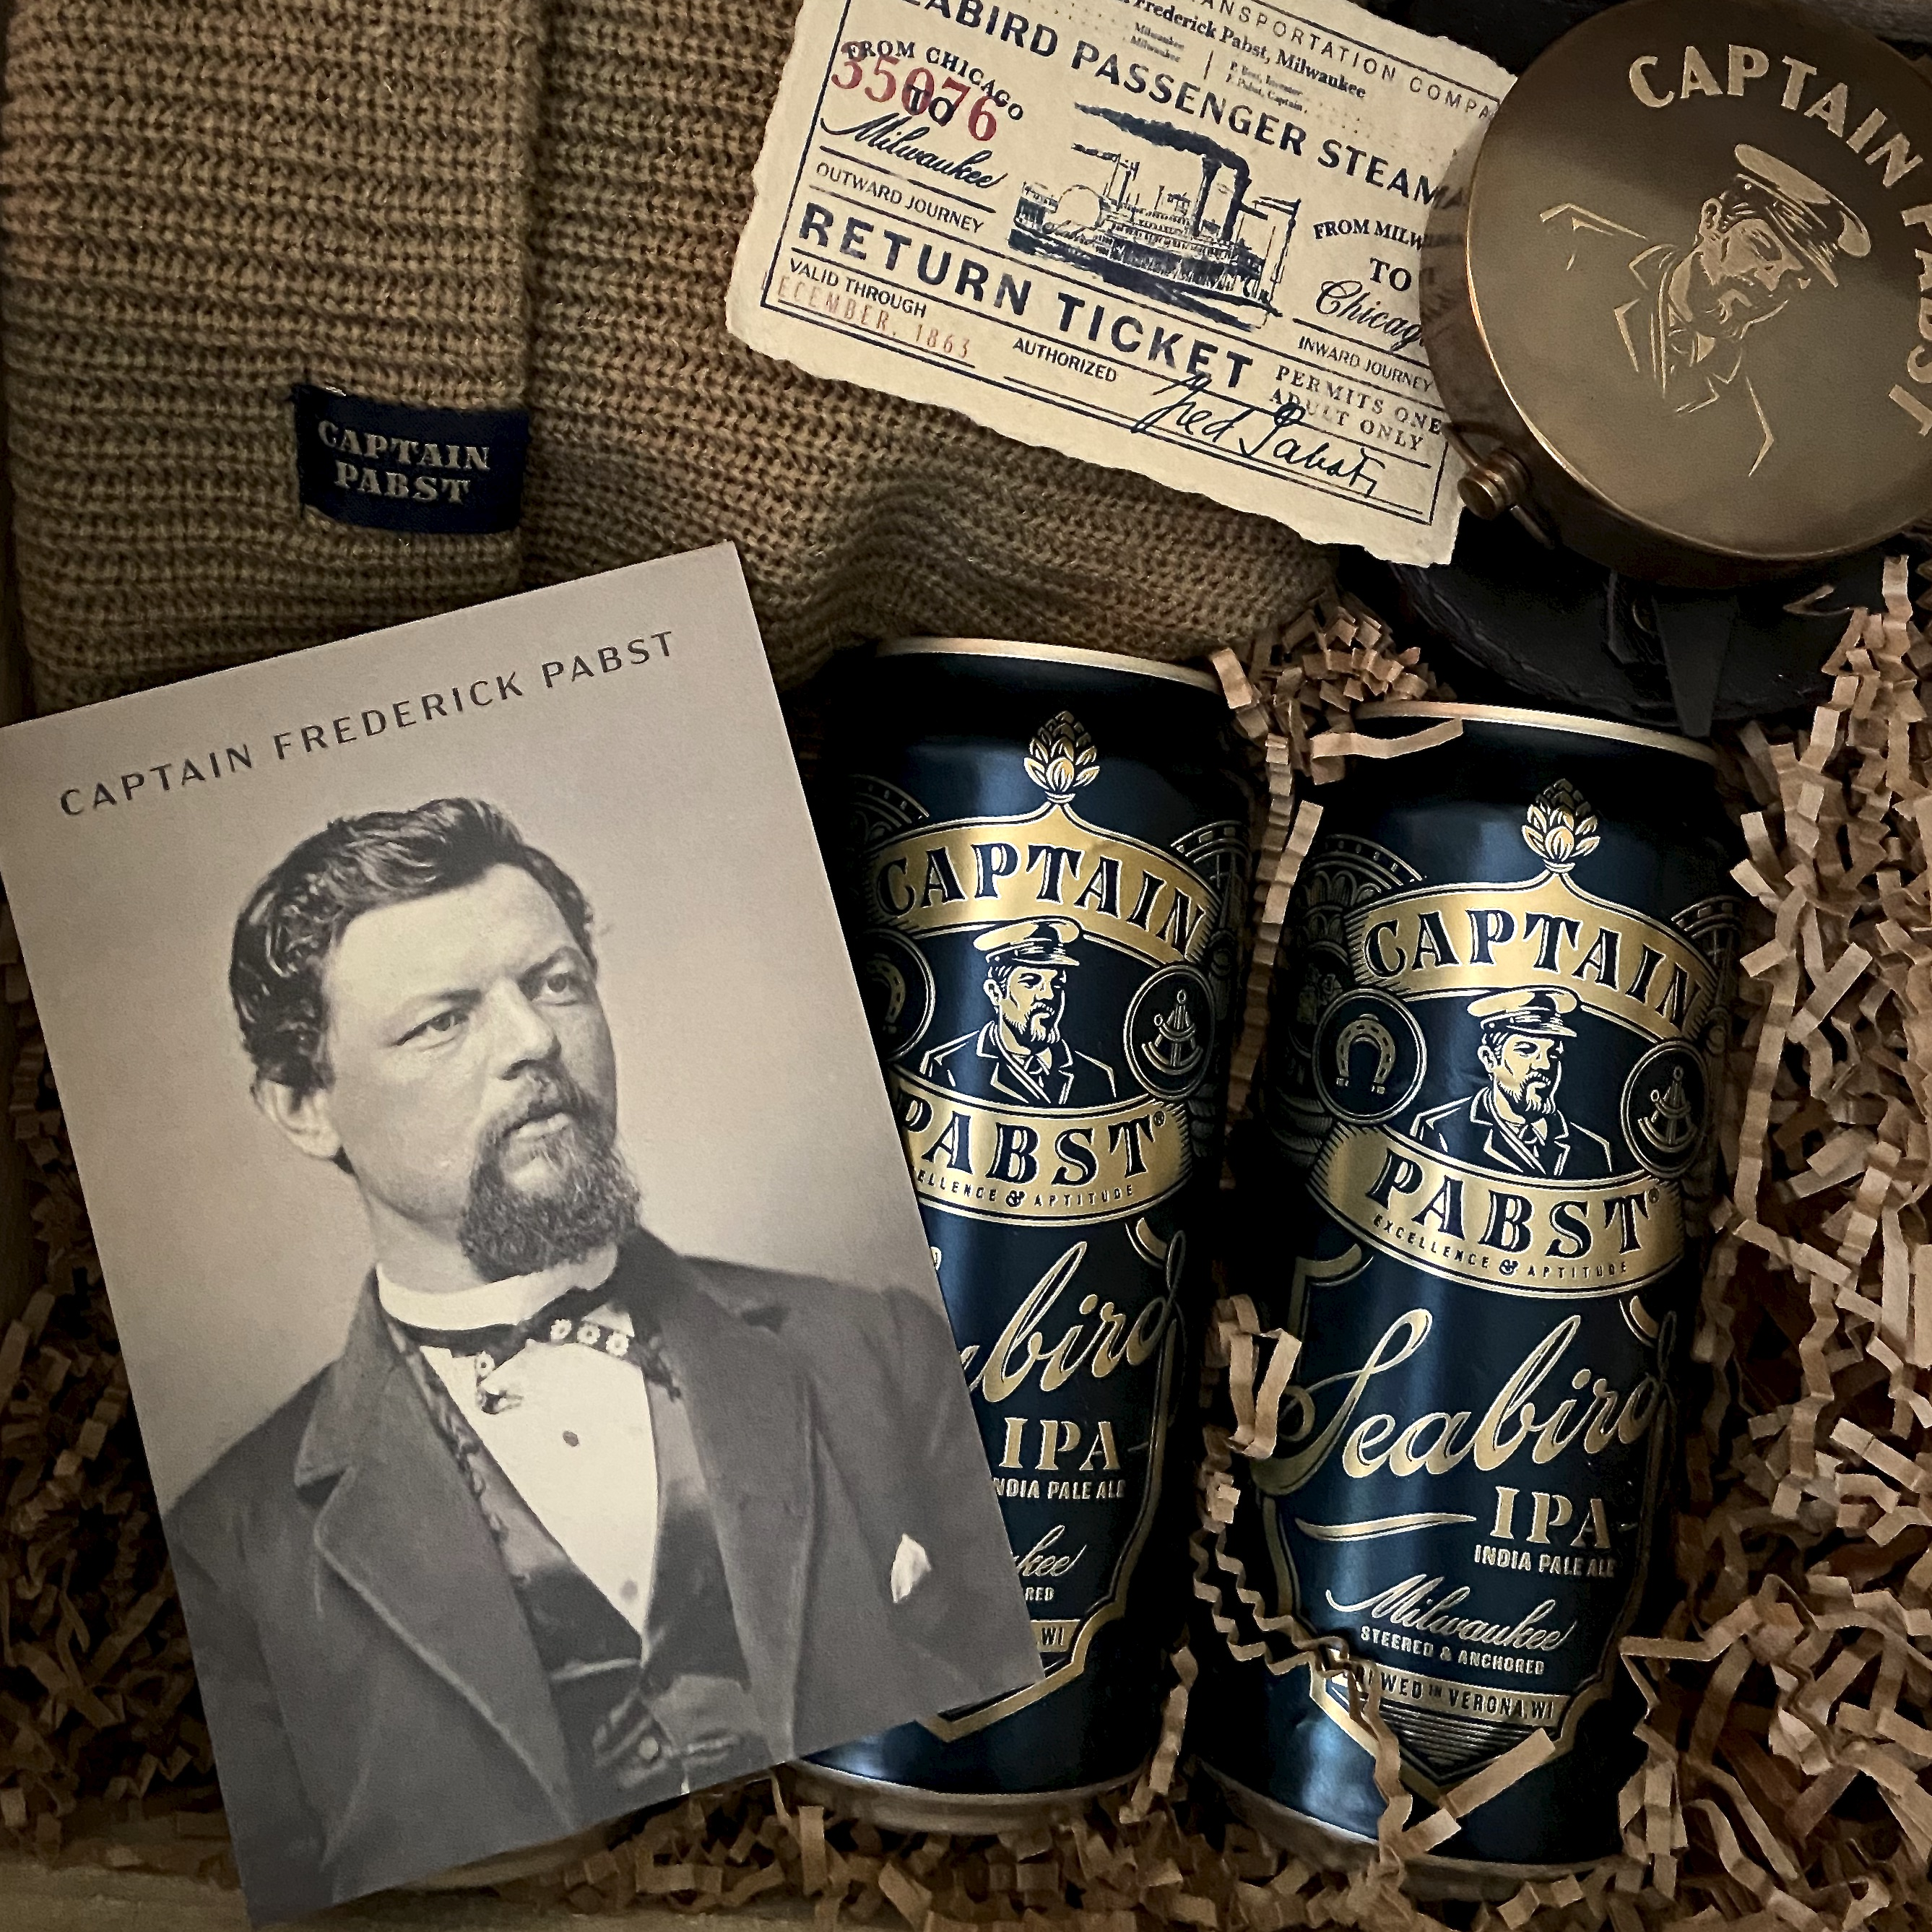 Pabst Brewing's Captain Frederick Pabst Seabird IPA pays homage to its founder, Captain Frederick Pabst. The brewer went all out in the media kit that was sent out.